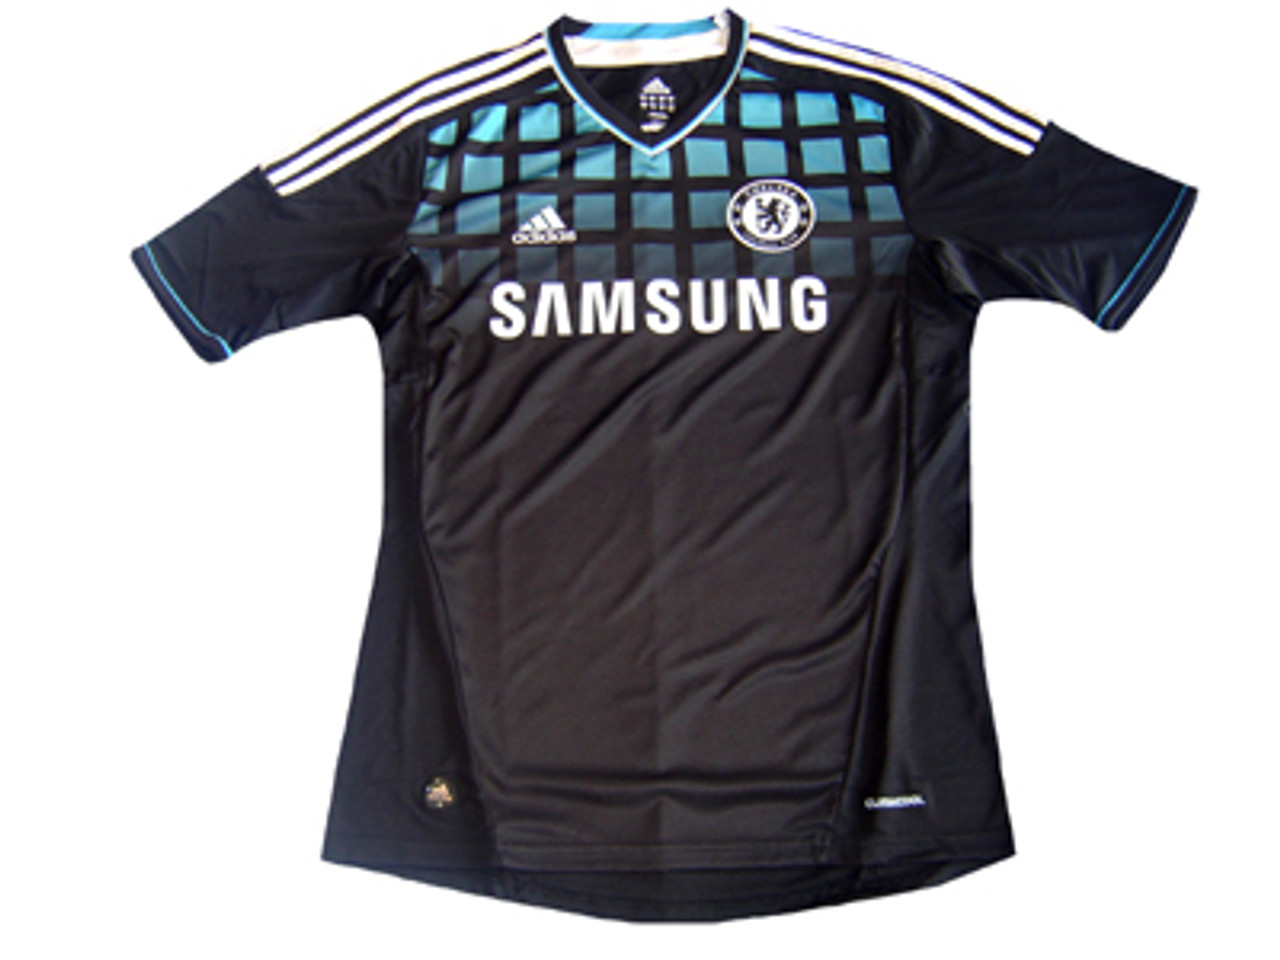 premium selection ce58e 78de7 ADIDAS CHELSEA 2012 AWAY JERSEY BLACK